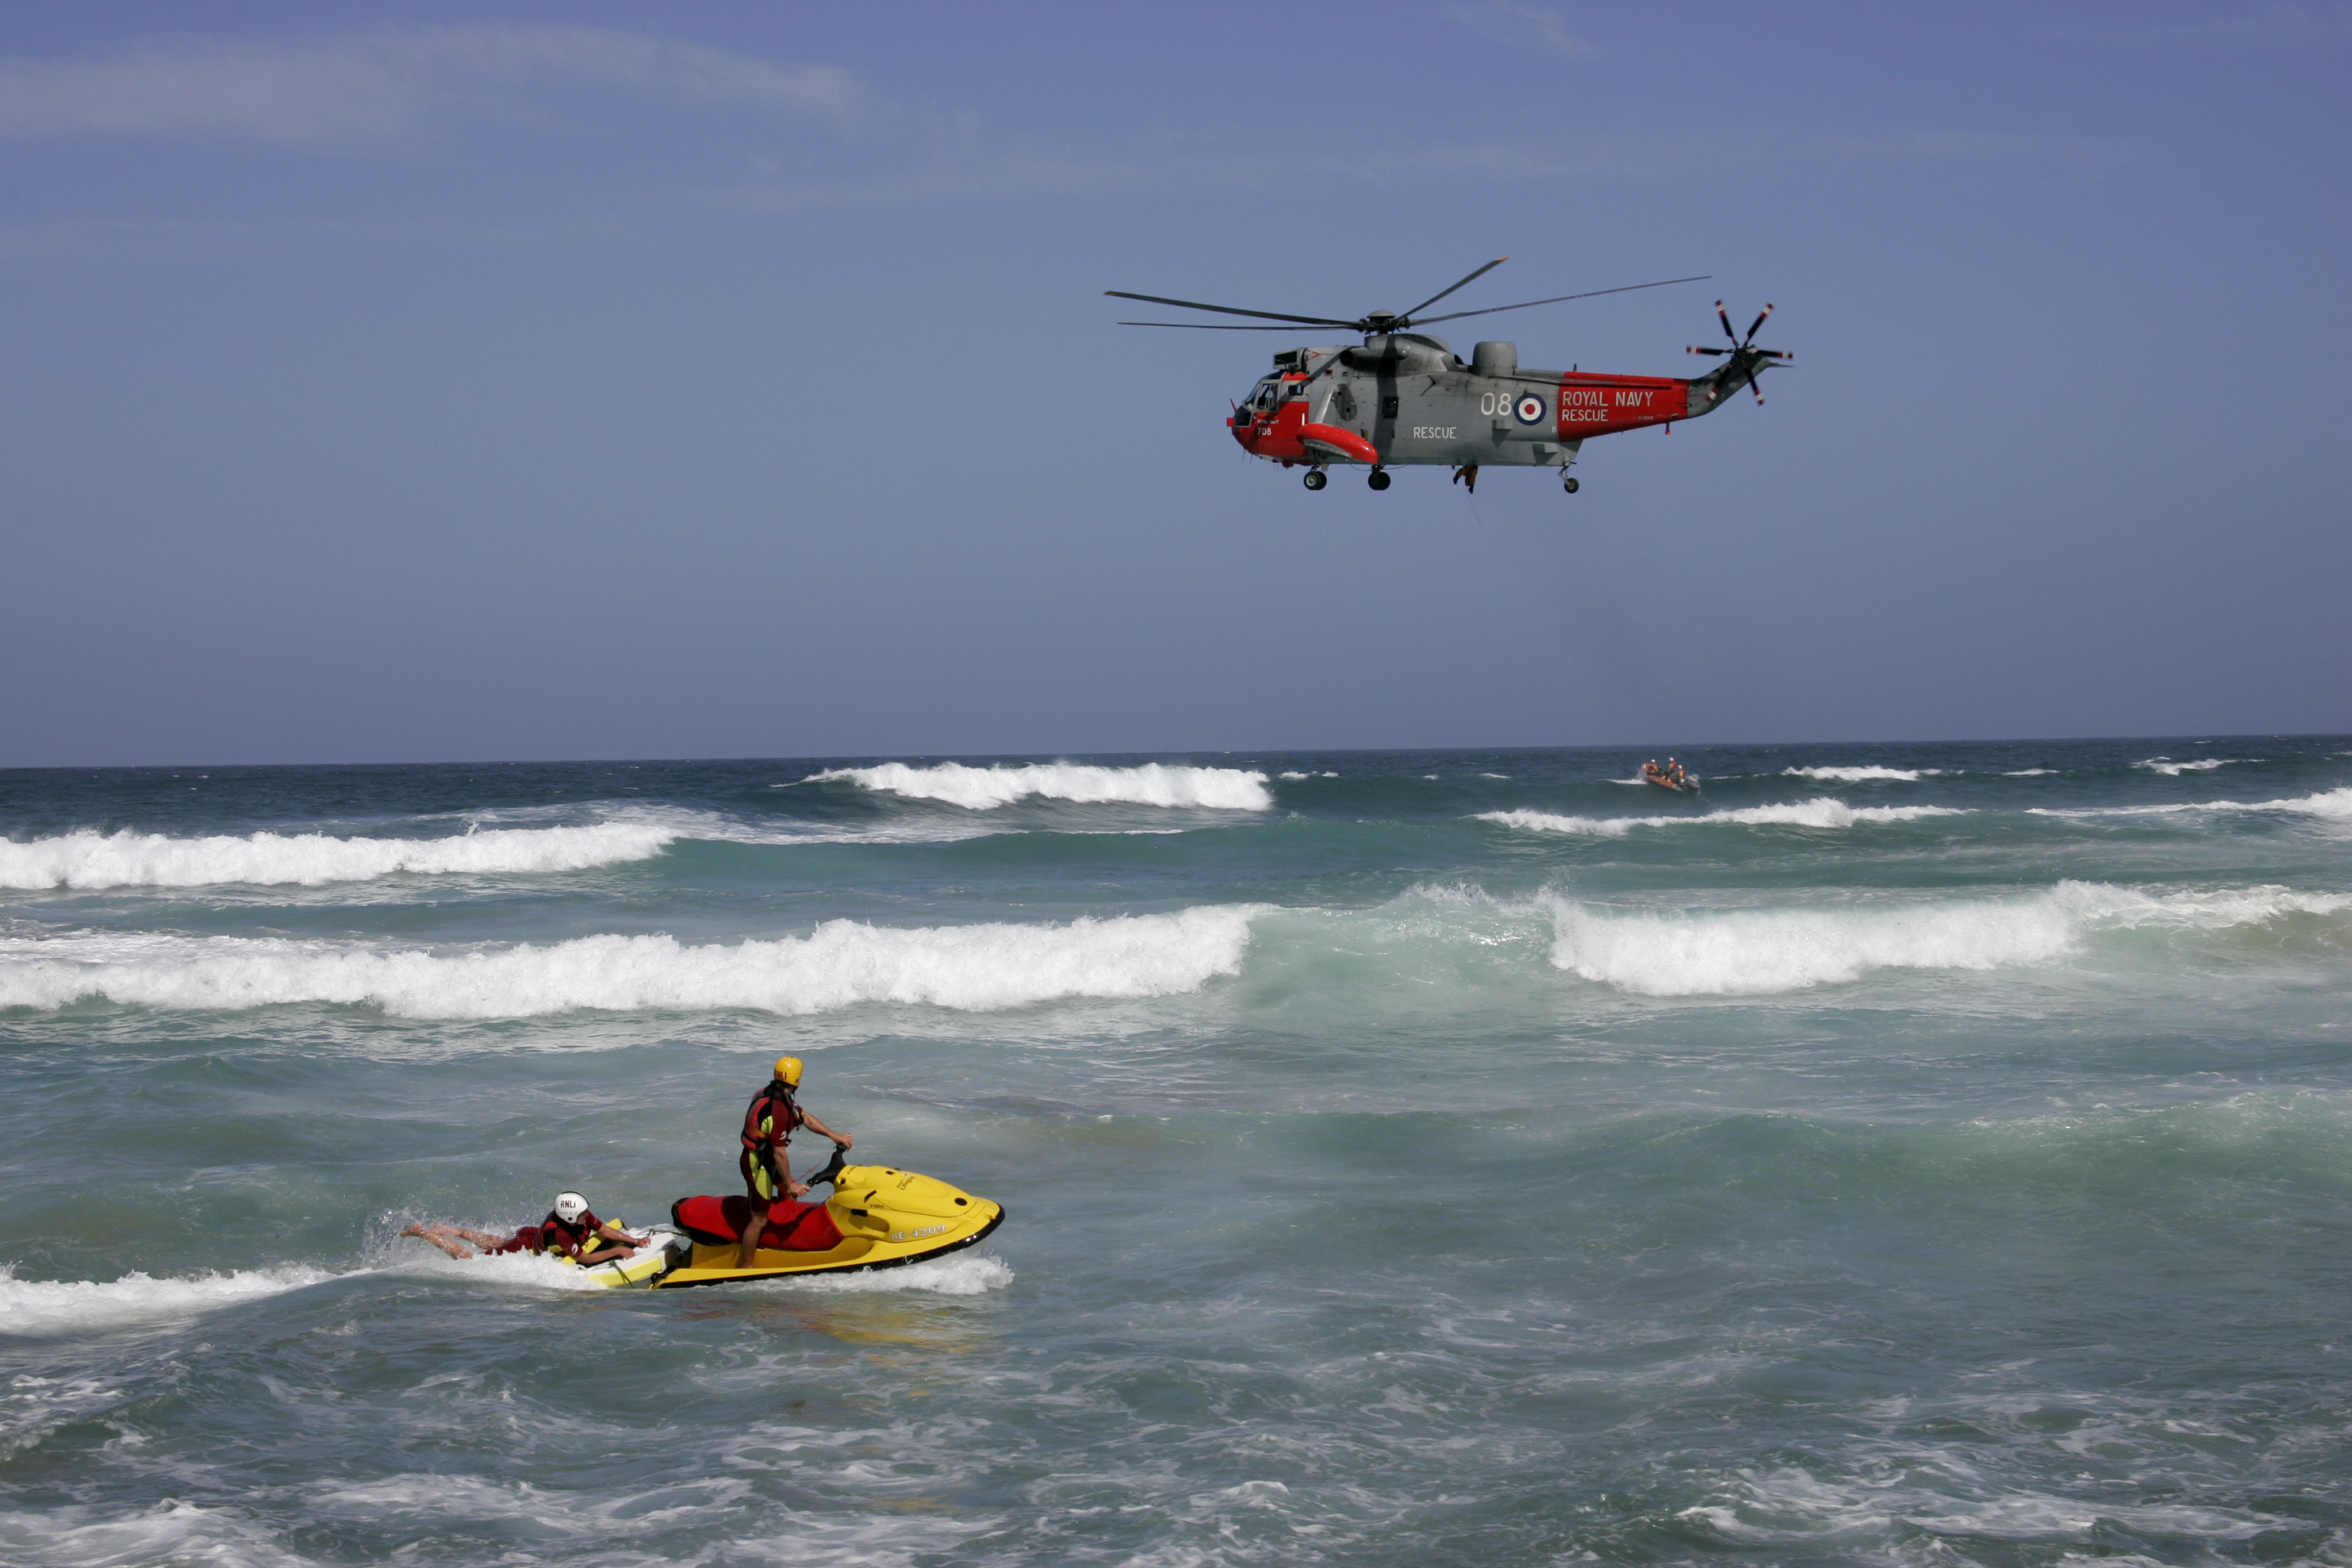 royal Navy Rescue high HD Wallpaper